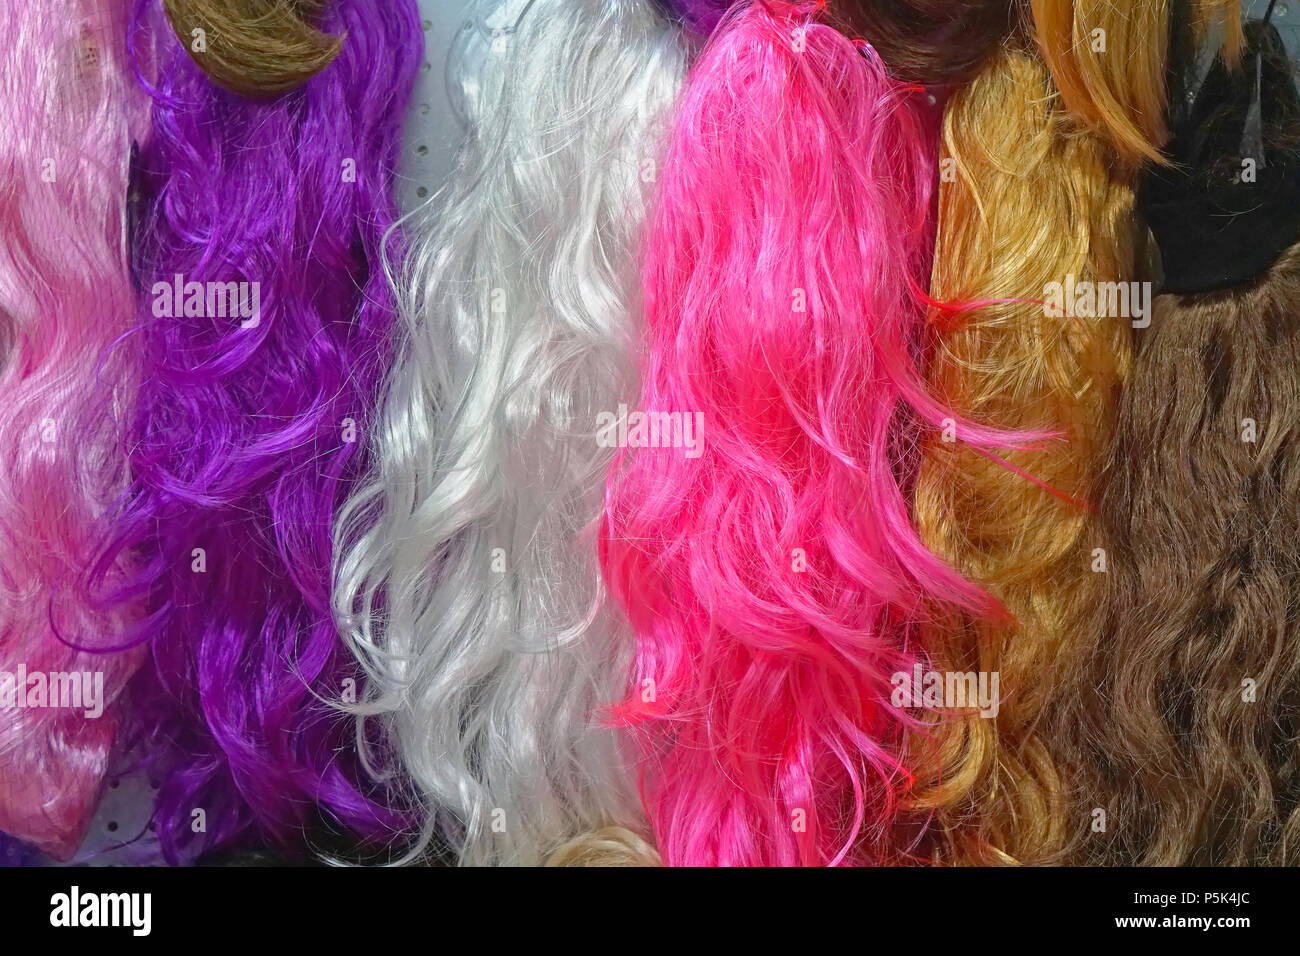 Colourful Synthetic Hair Extensions For Sale Stock Photo 210018436